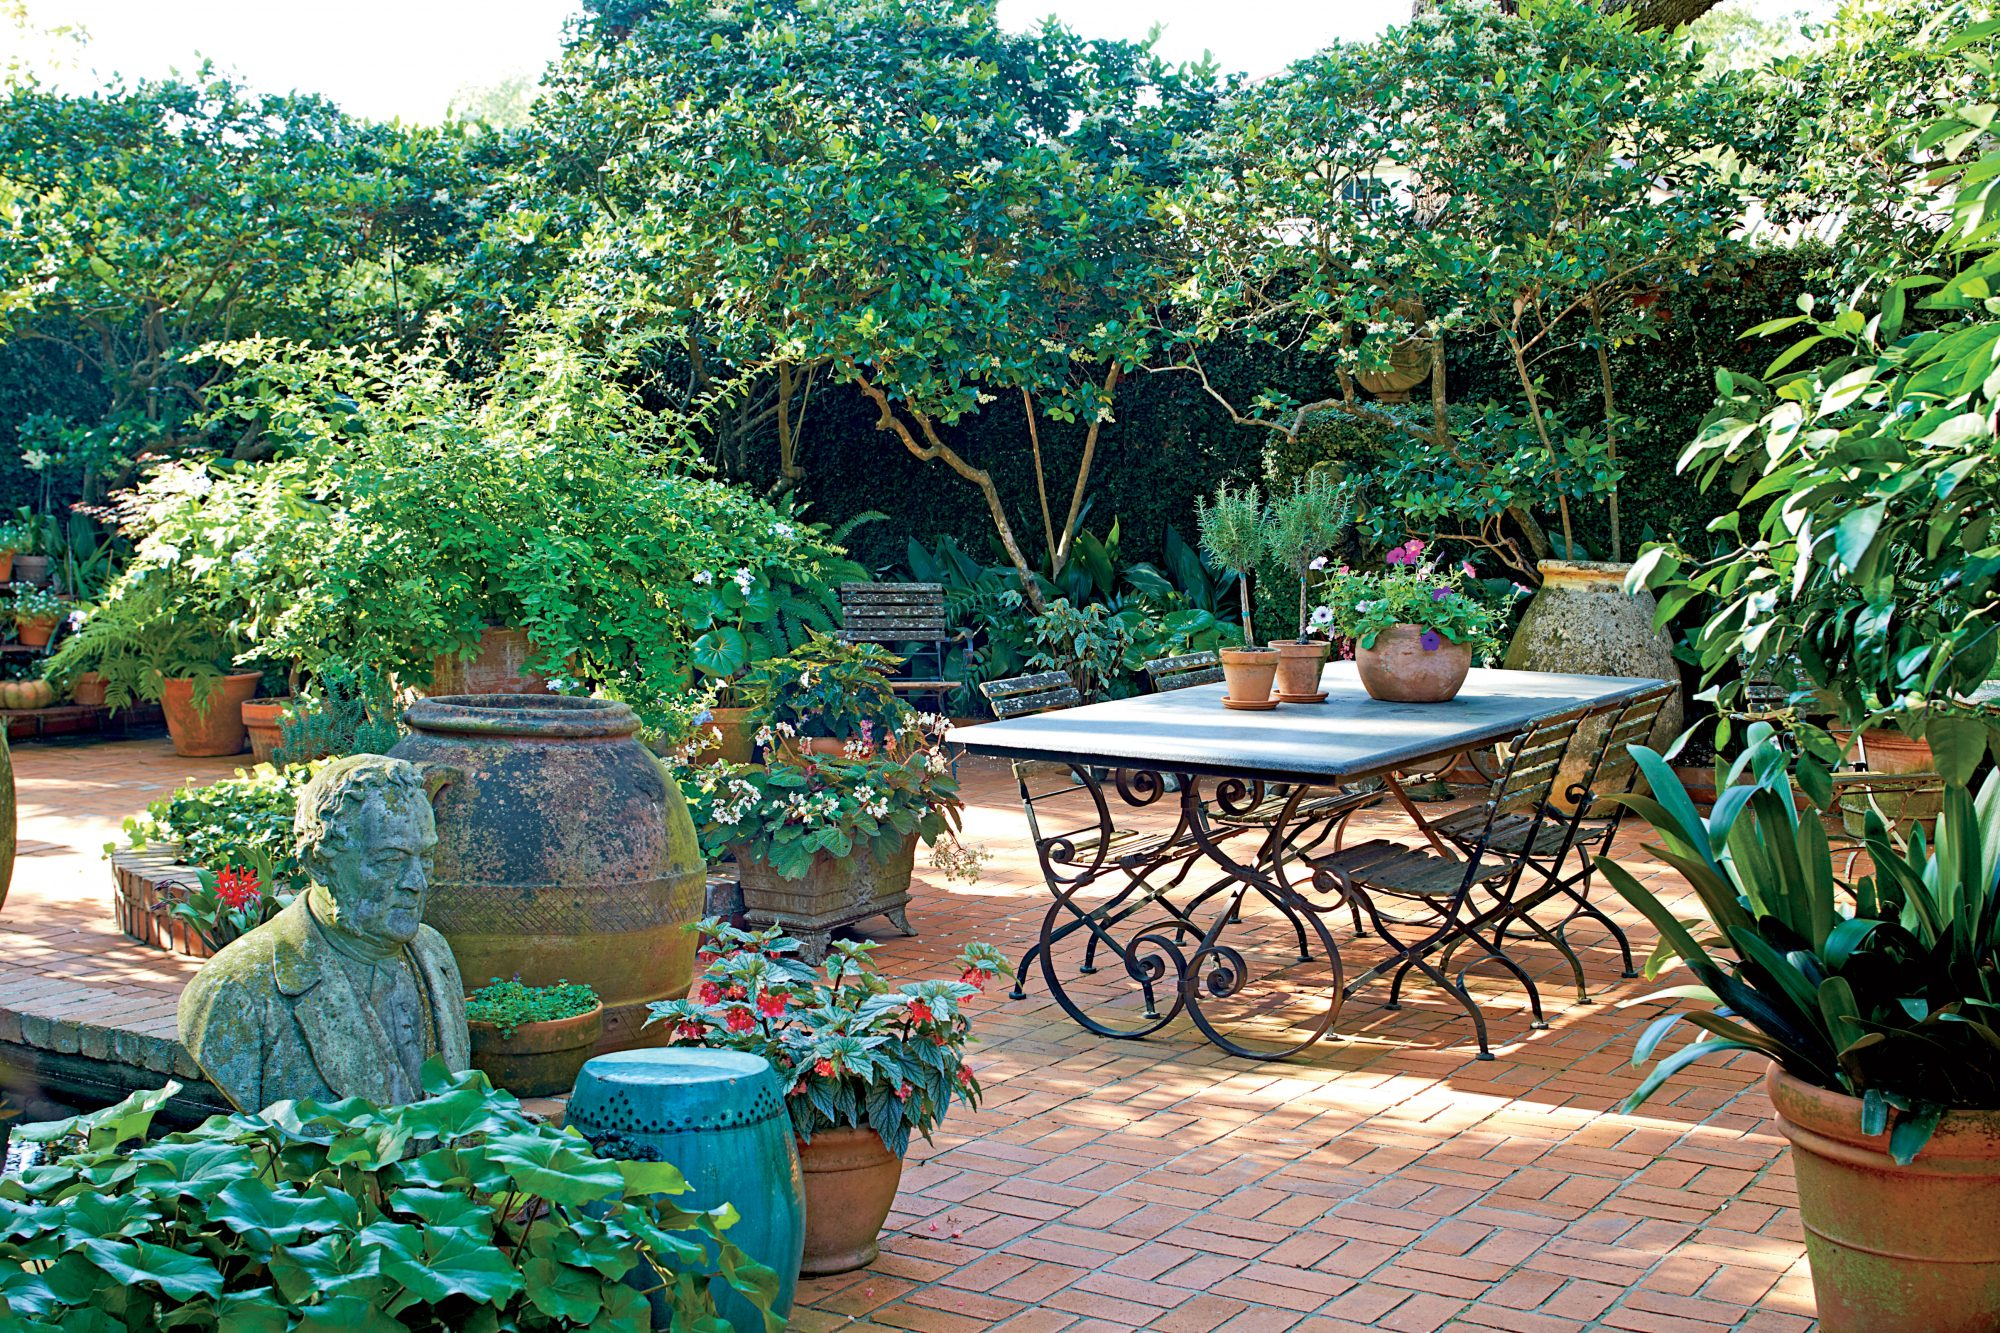 French backyard gardens - 7 Backyard Makeover Tips If You Dream Of A French Court In New Orleans